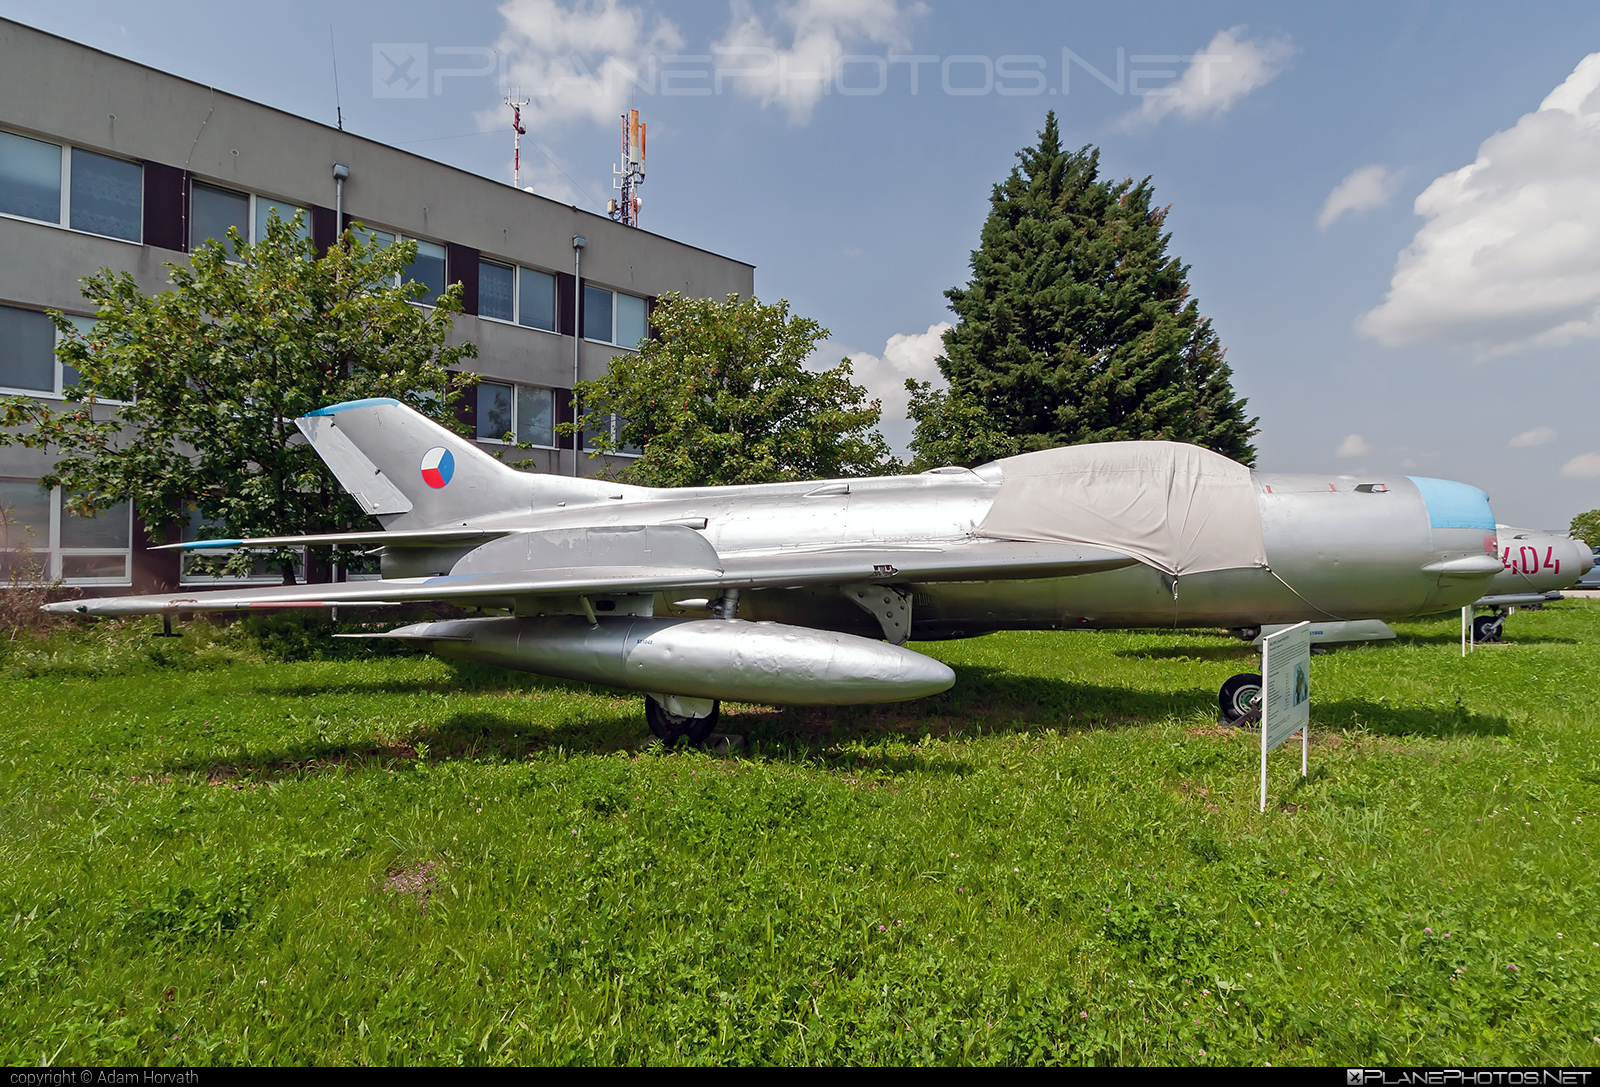 Mikoyan-Gurevich MiG-19PM - 1048 operated by Letectvo ČSĽA (Czechoslovak Air Force) #mig #mikoyangurevich